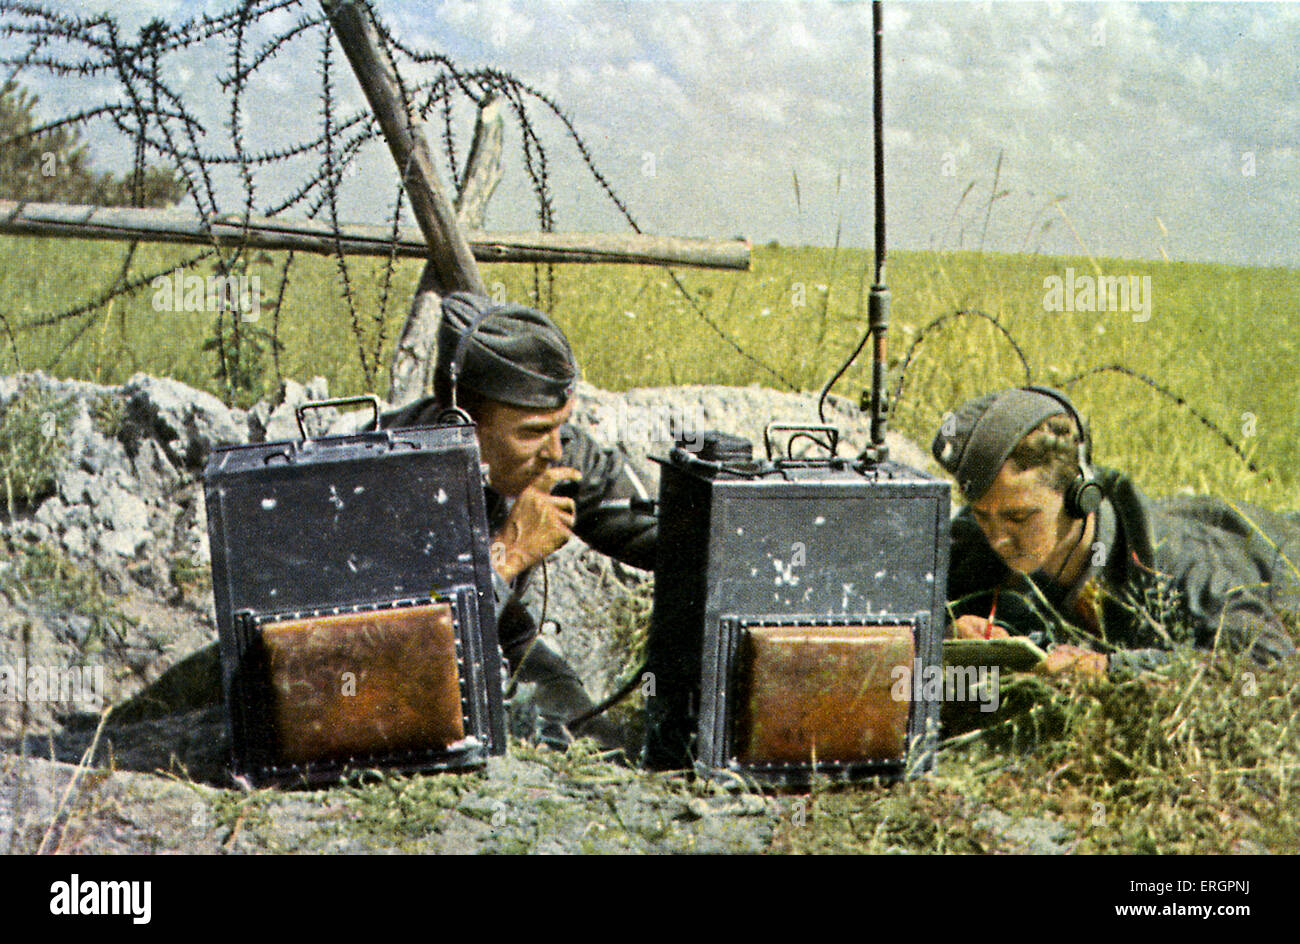 WW2 - Eastern Front. Team of radio operators working during combat. - Stock Image